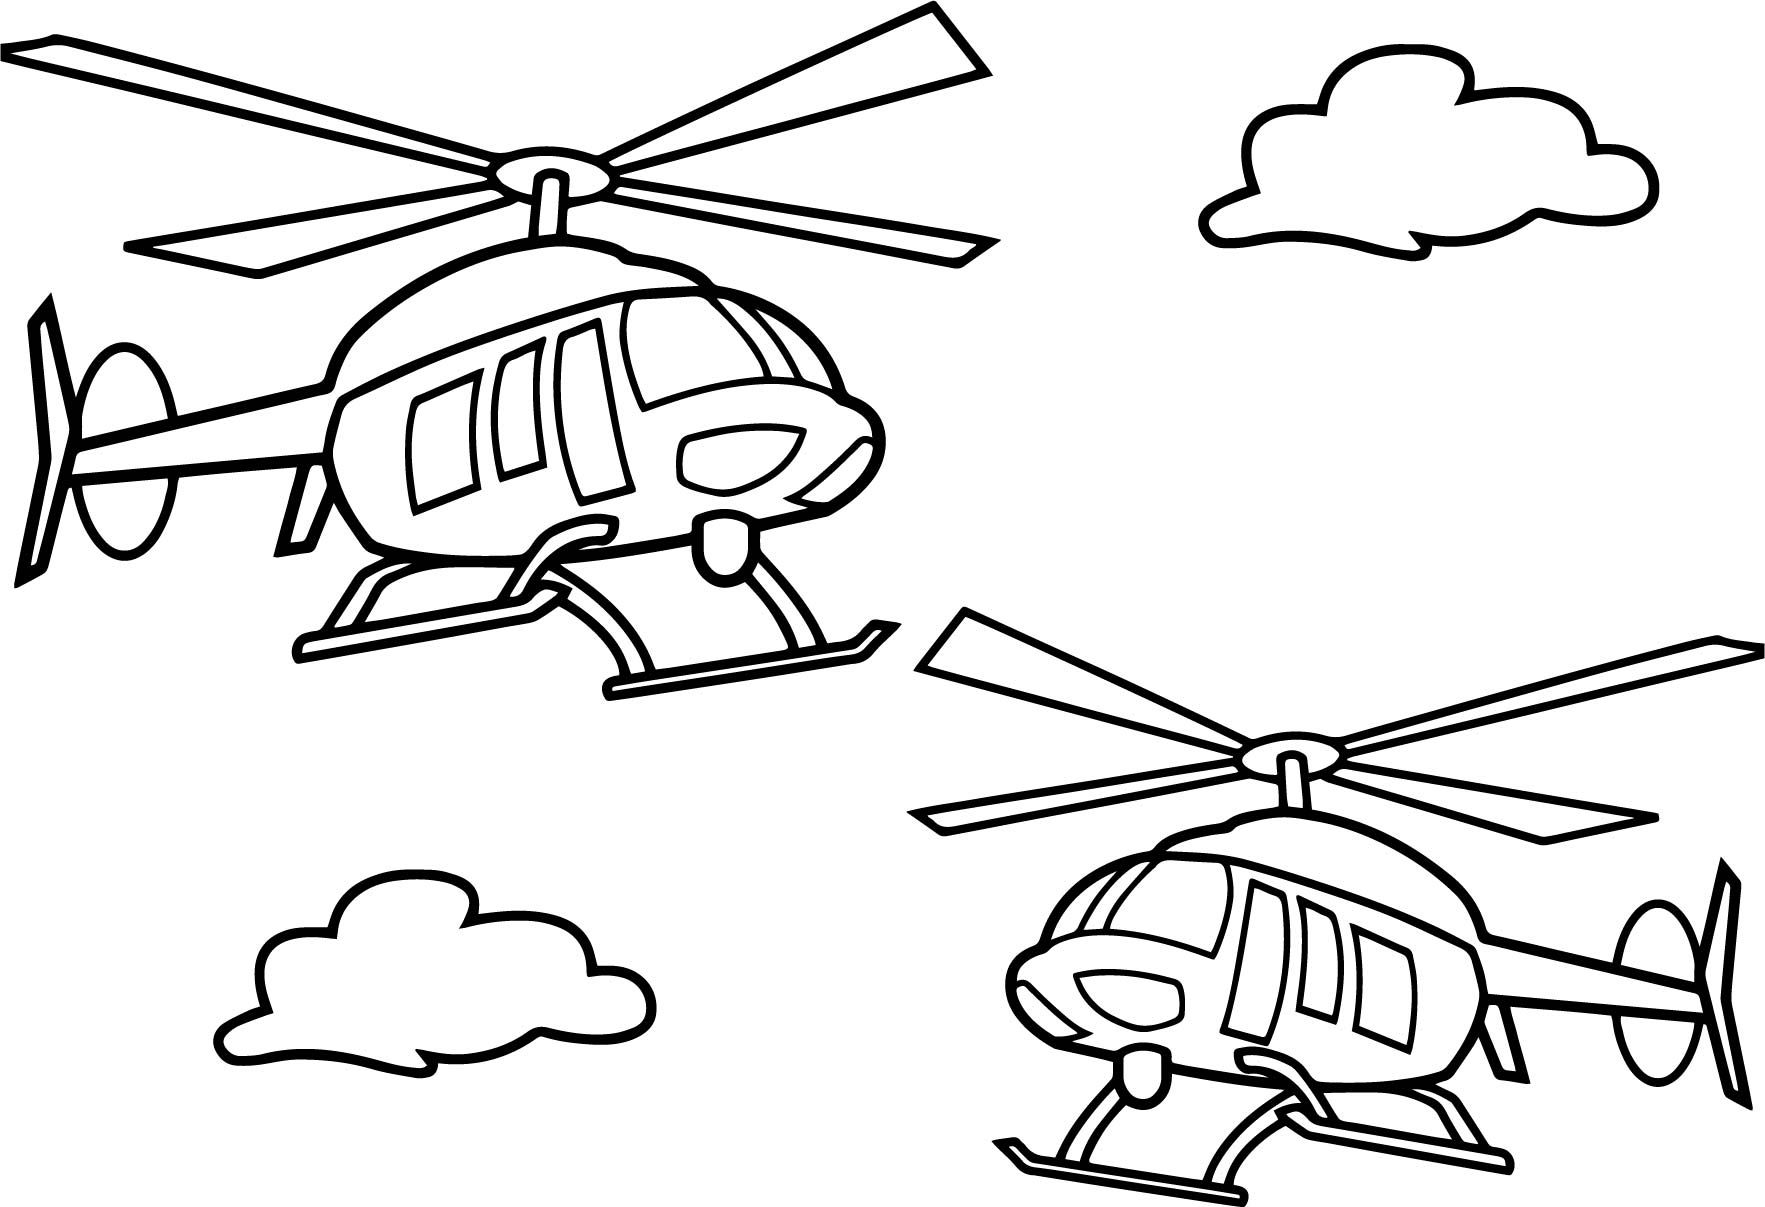 Cool Two Helicopter Coloring Page Helicopter Coloring Coloring Pages Helicopter Coloring Page